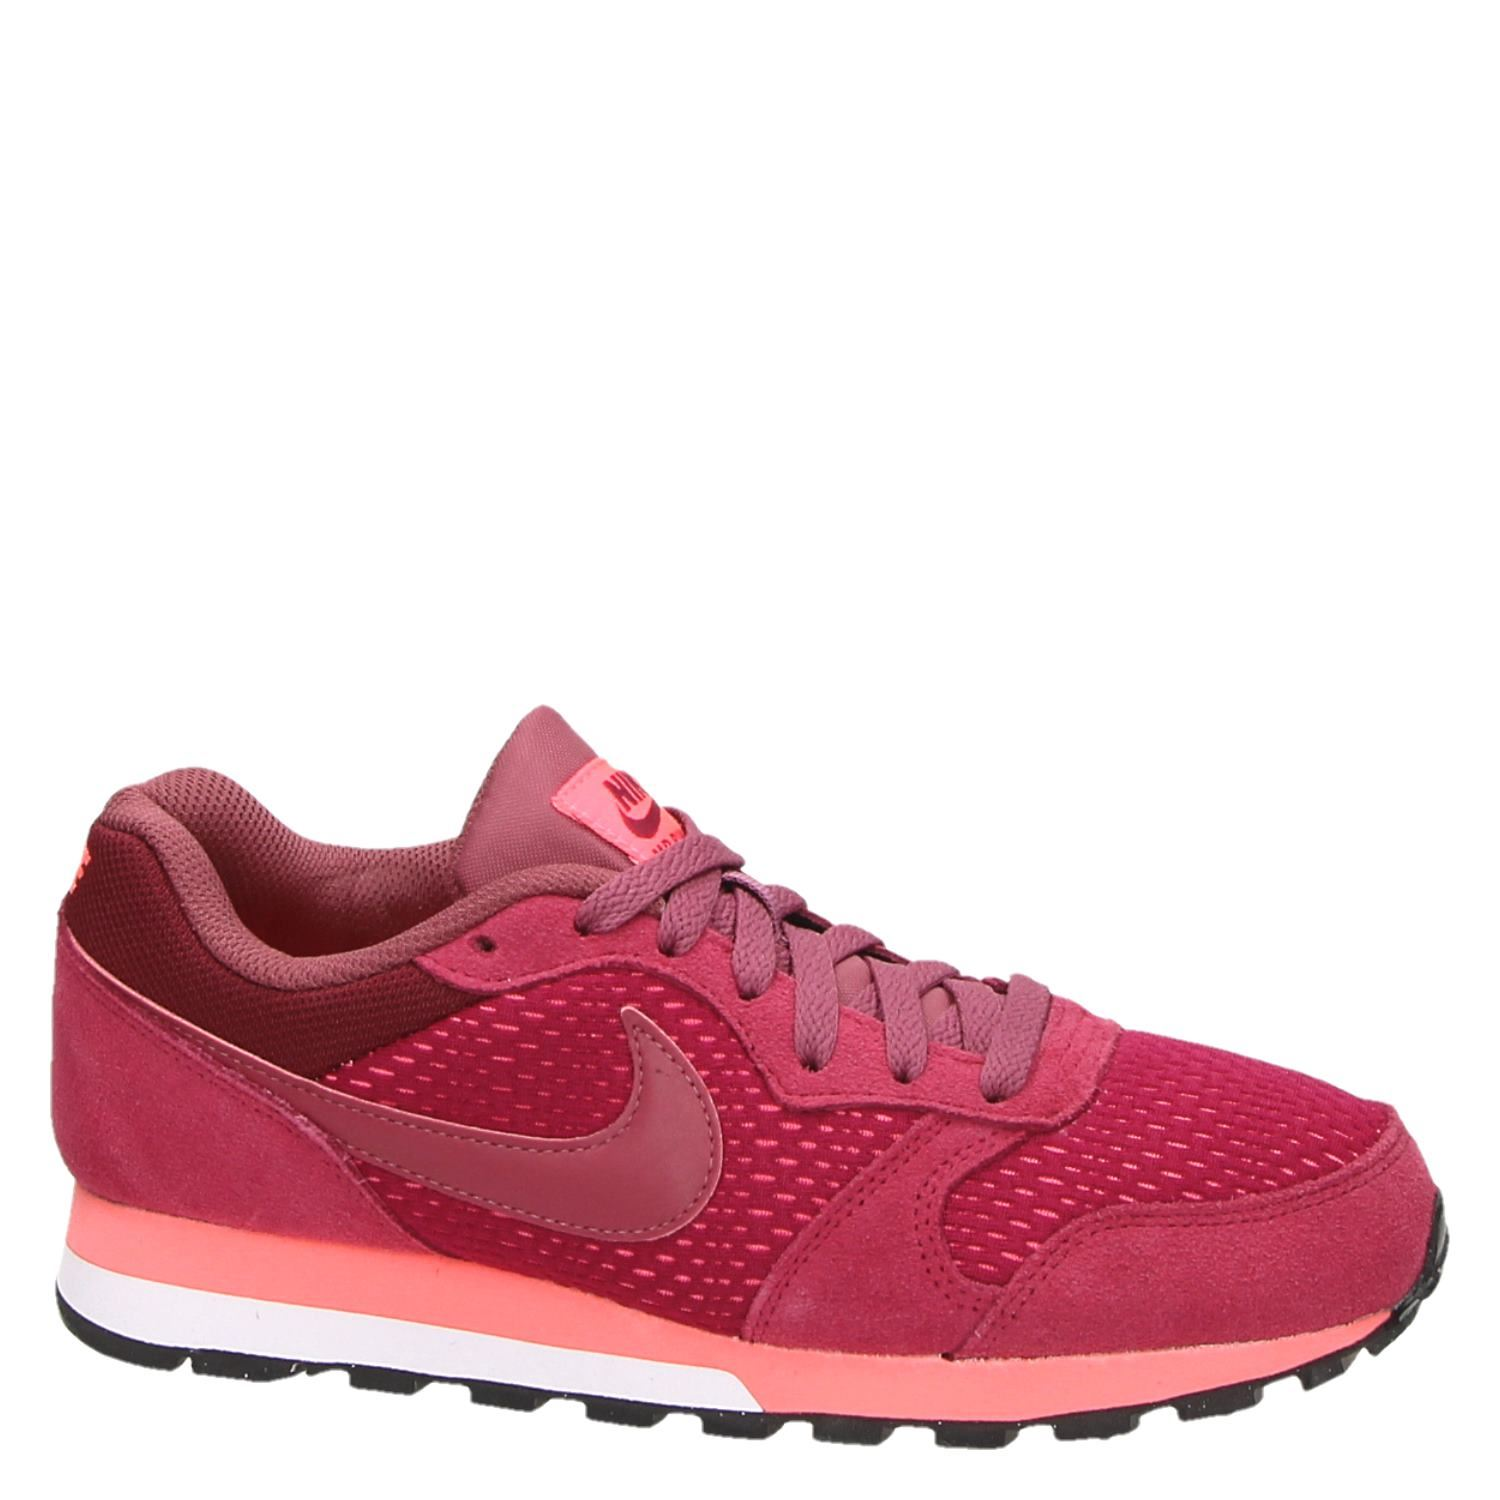 8471dd7f4fc Nike MD Runner 2 dames lage sneakers rood